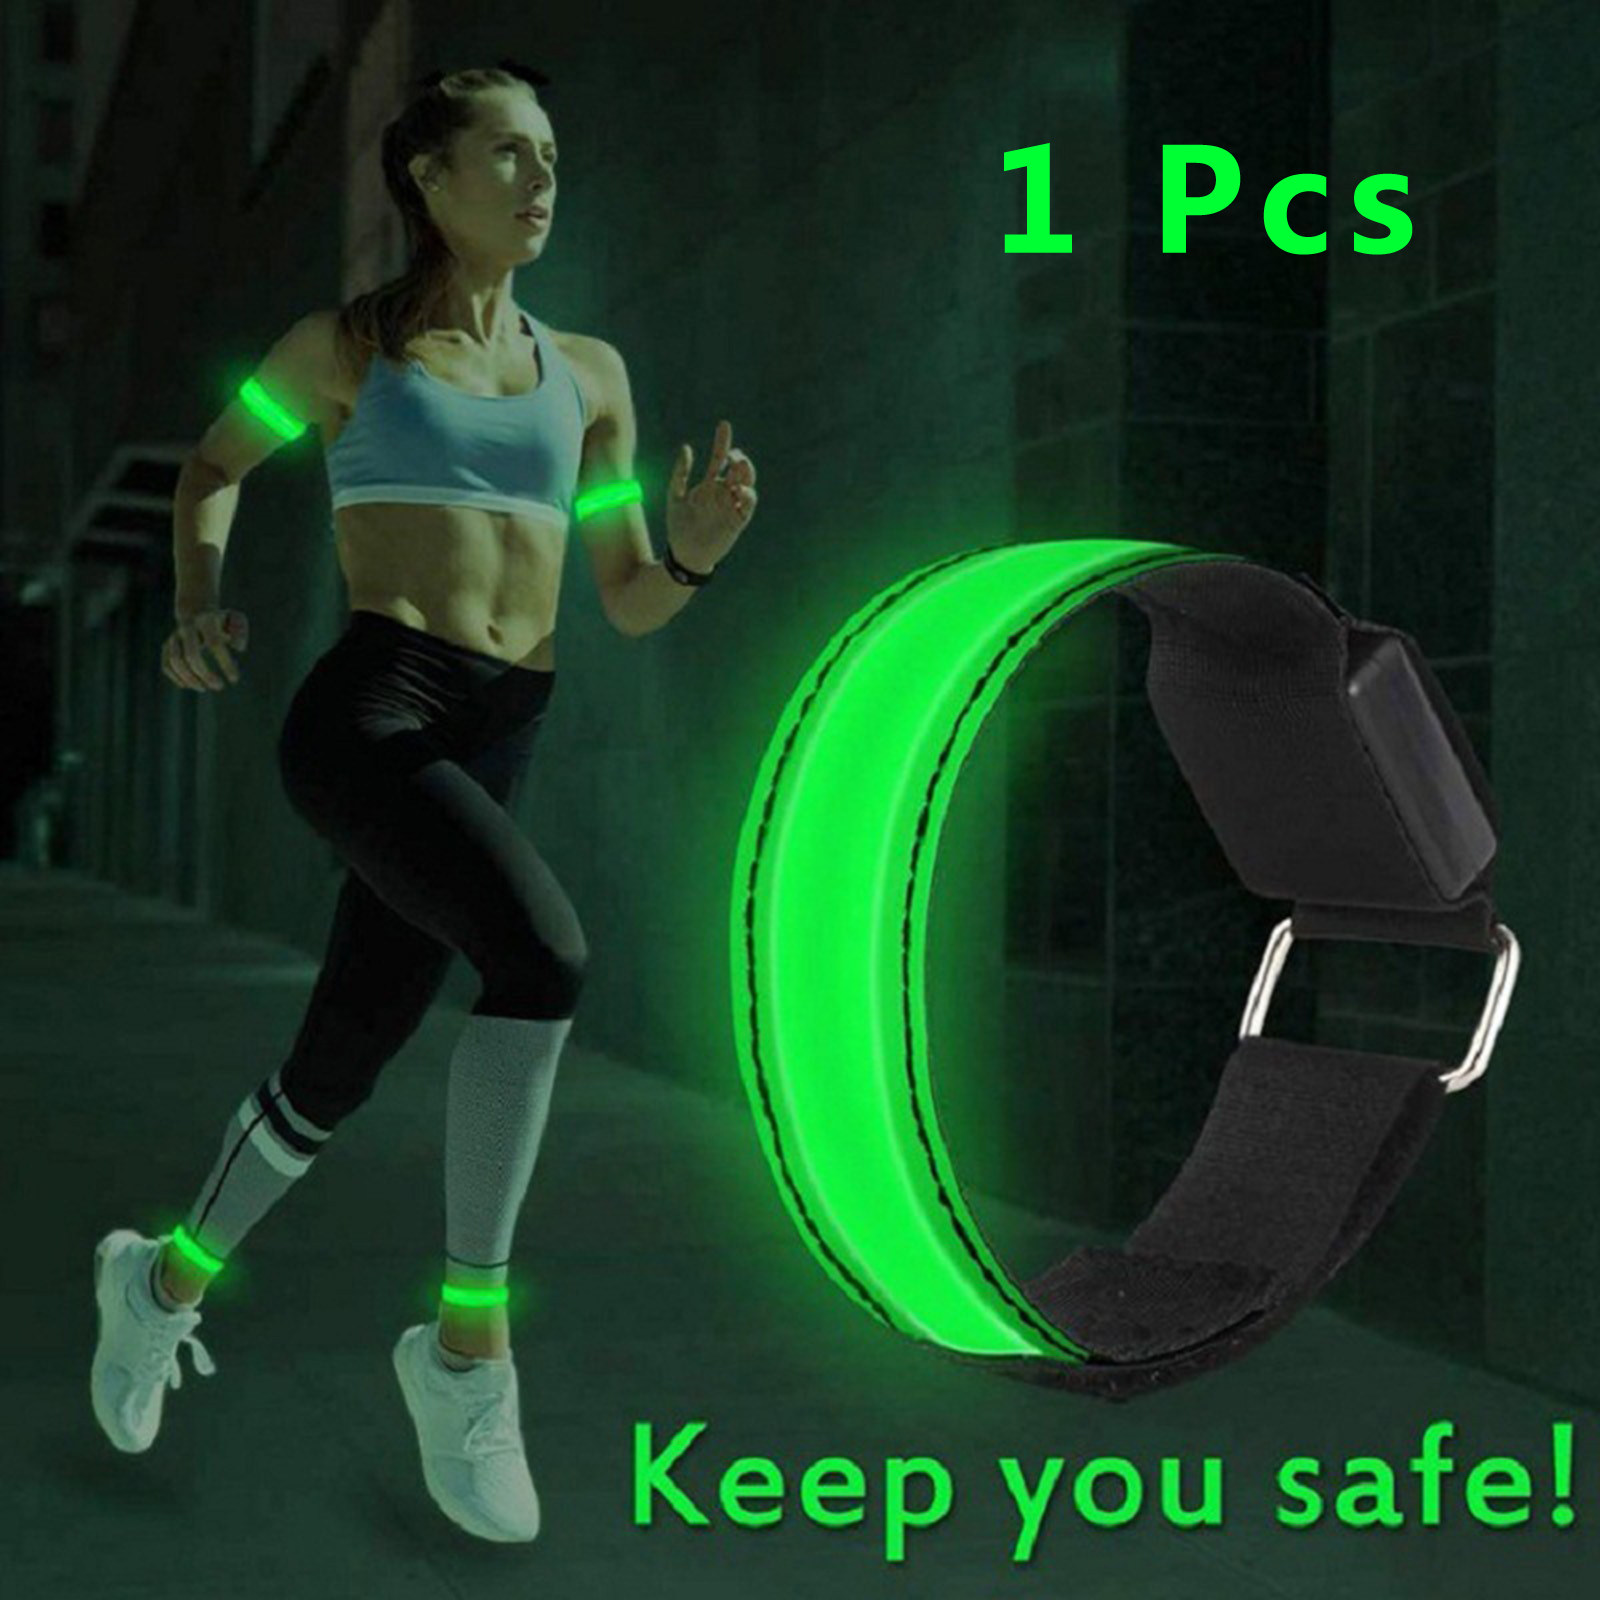 LED Armband Running Lights Ankle Glow Band Flashing Light for Cycling Walking